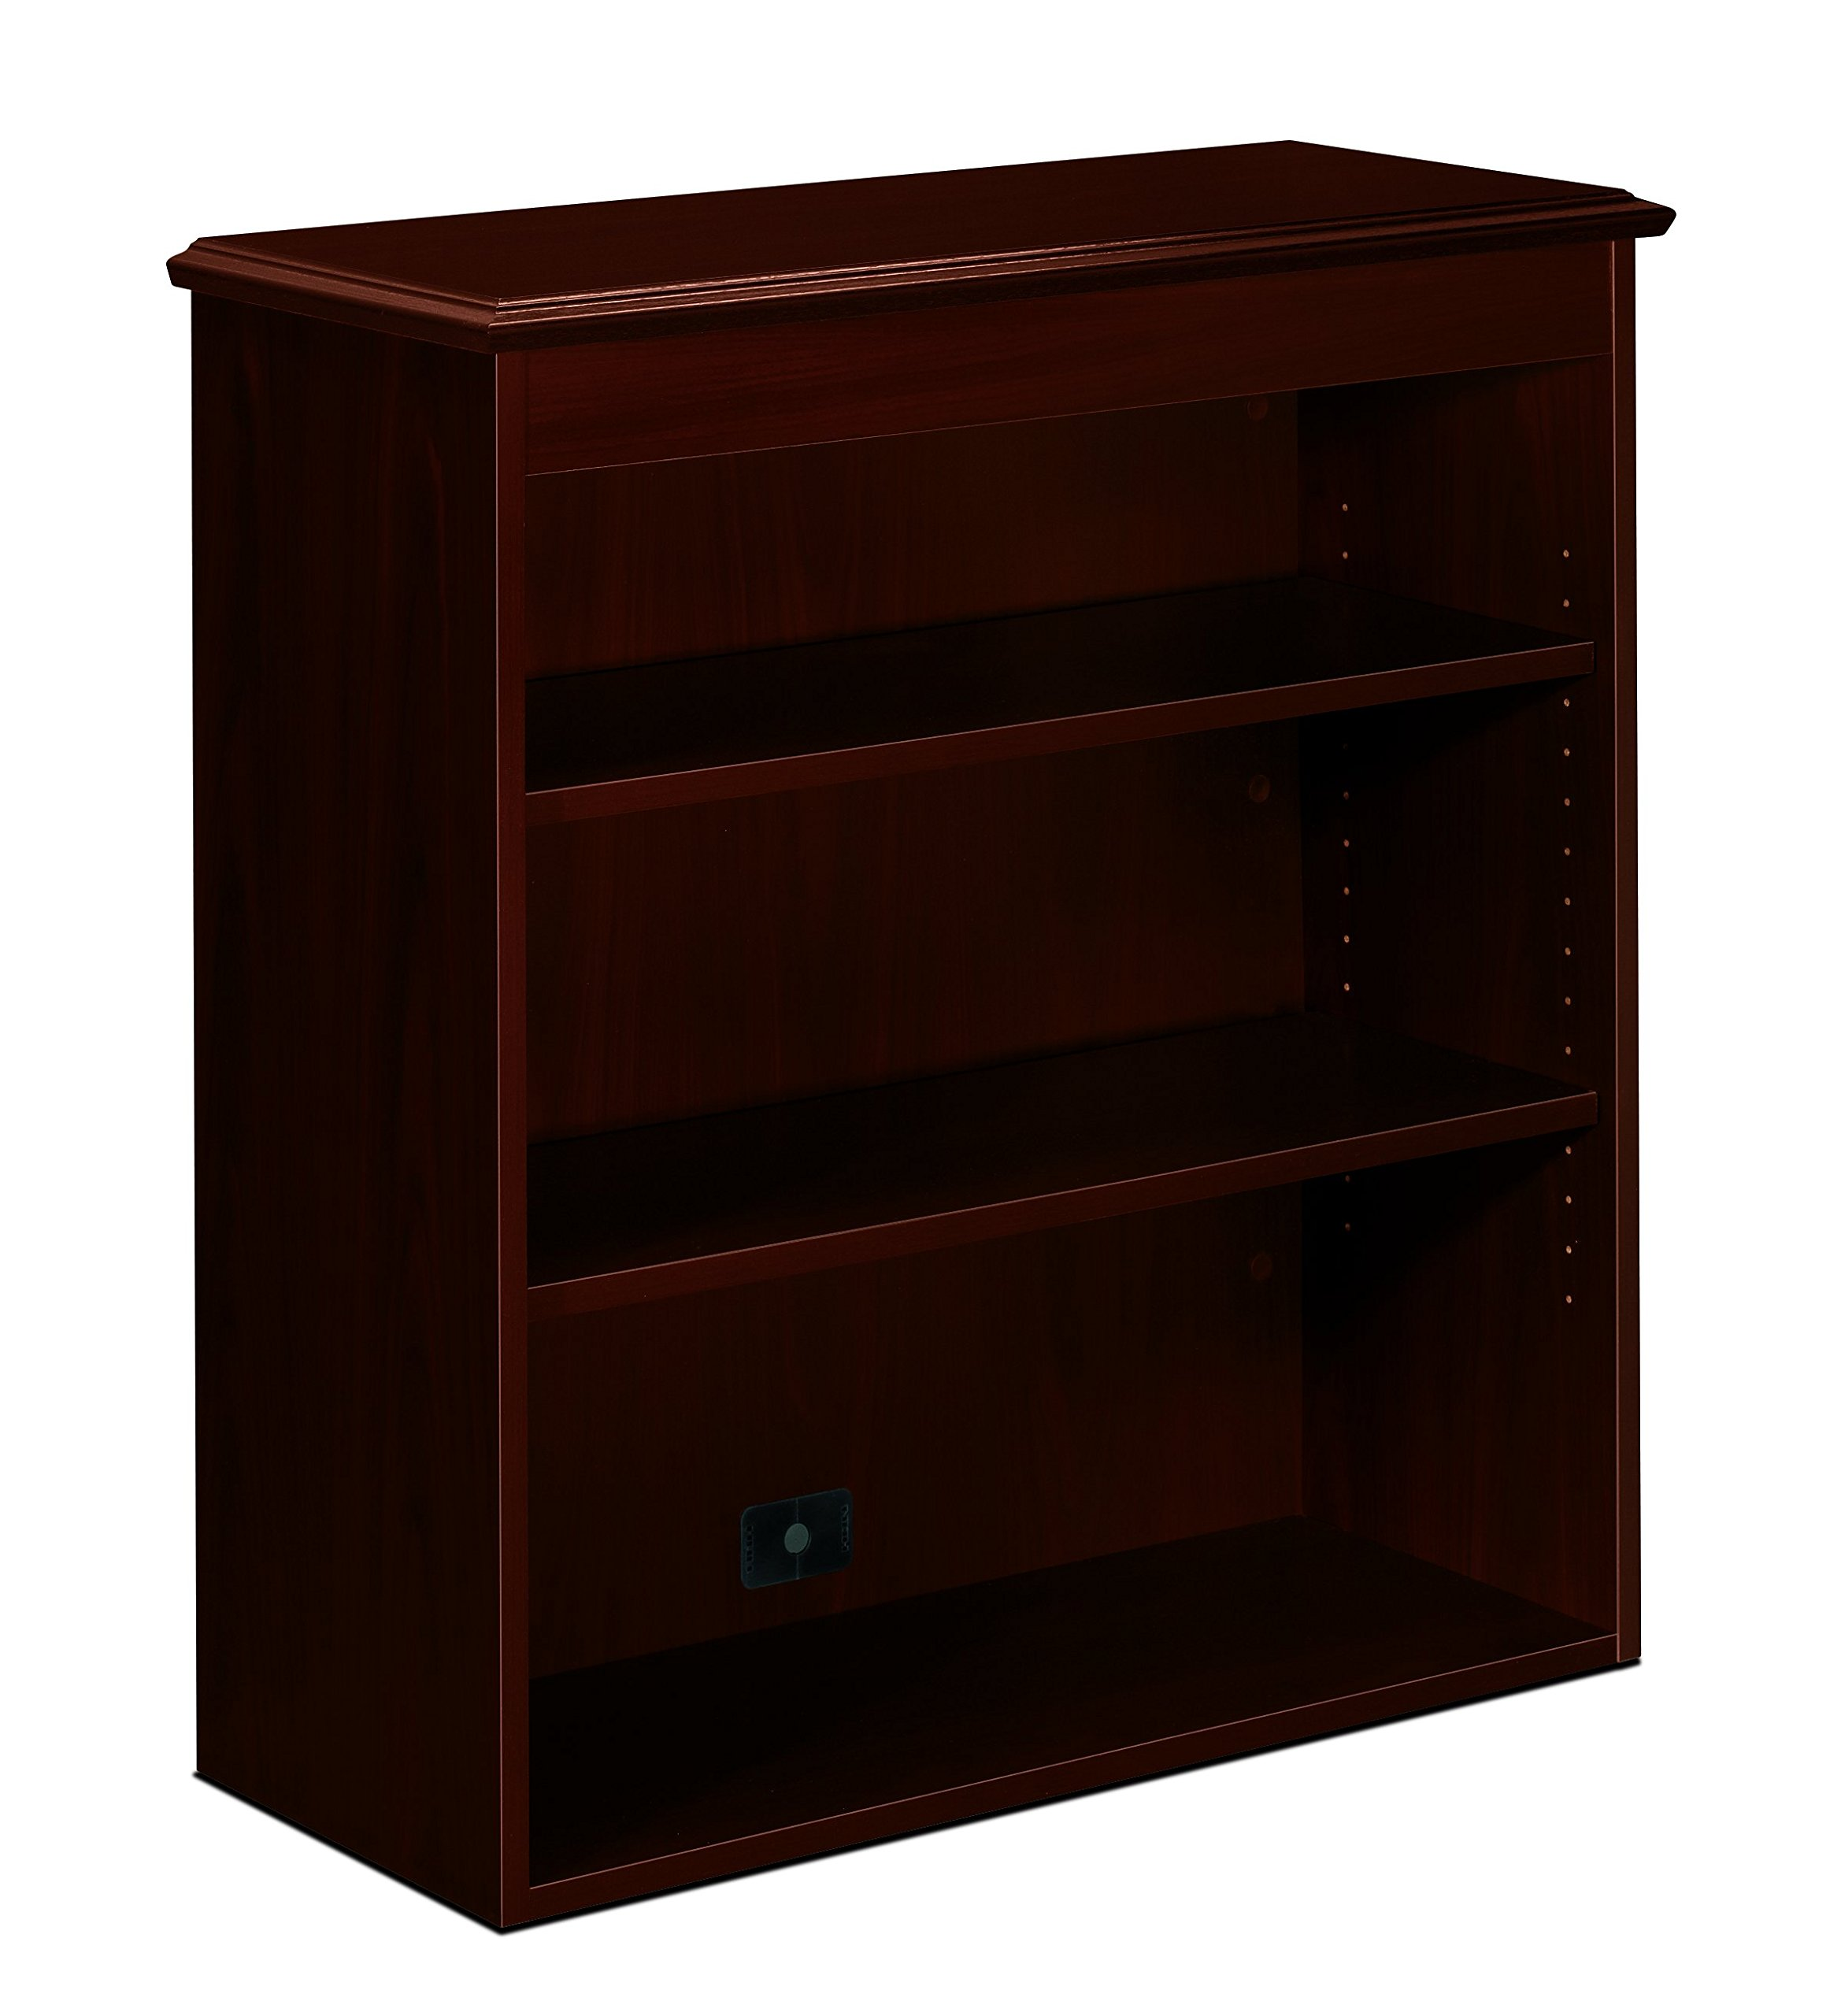 HON 94011N 94000 Series 33-1/2 by 33-1/2 by 28-7/8-Inch Queen Anne Base Kit, Mahogany